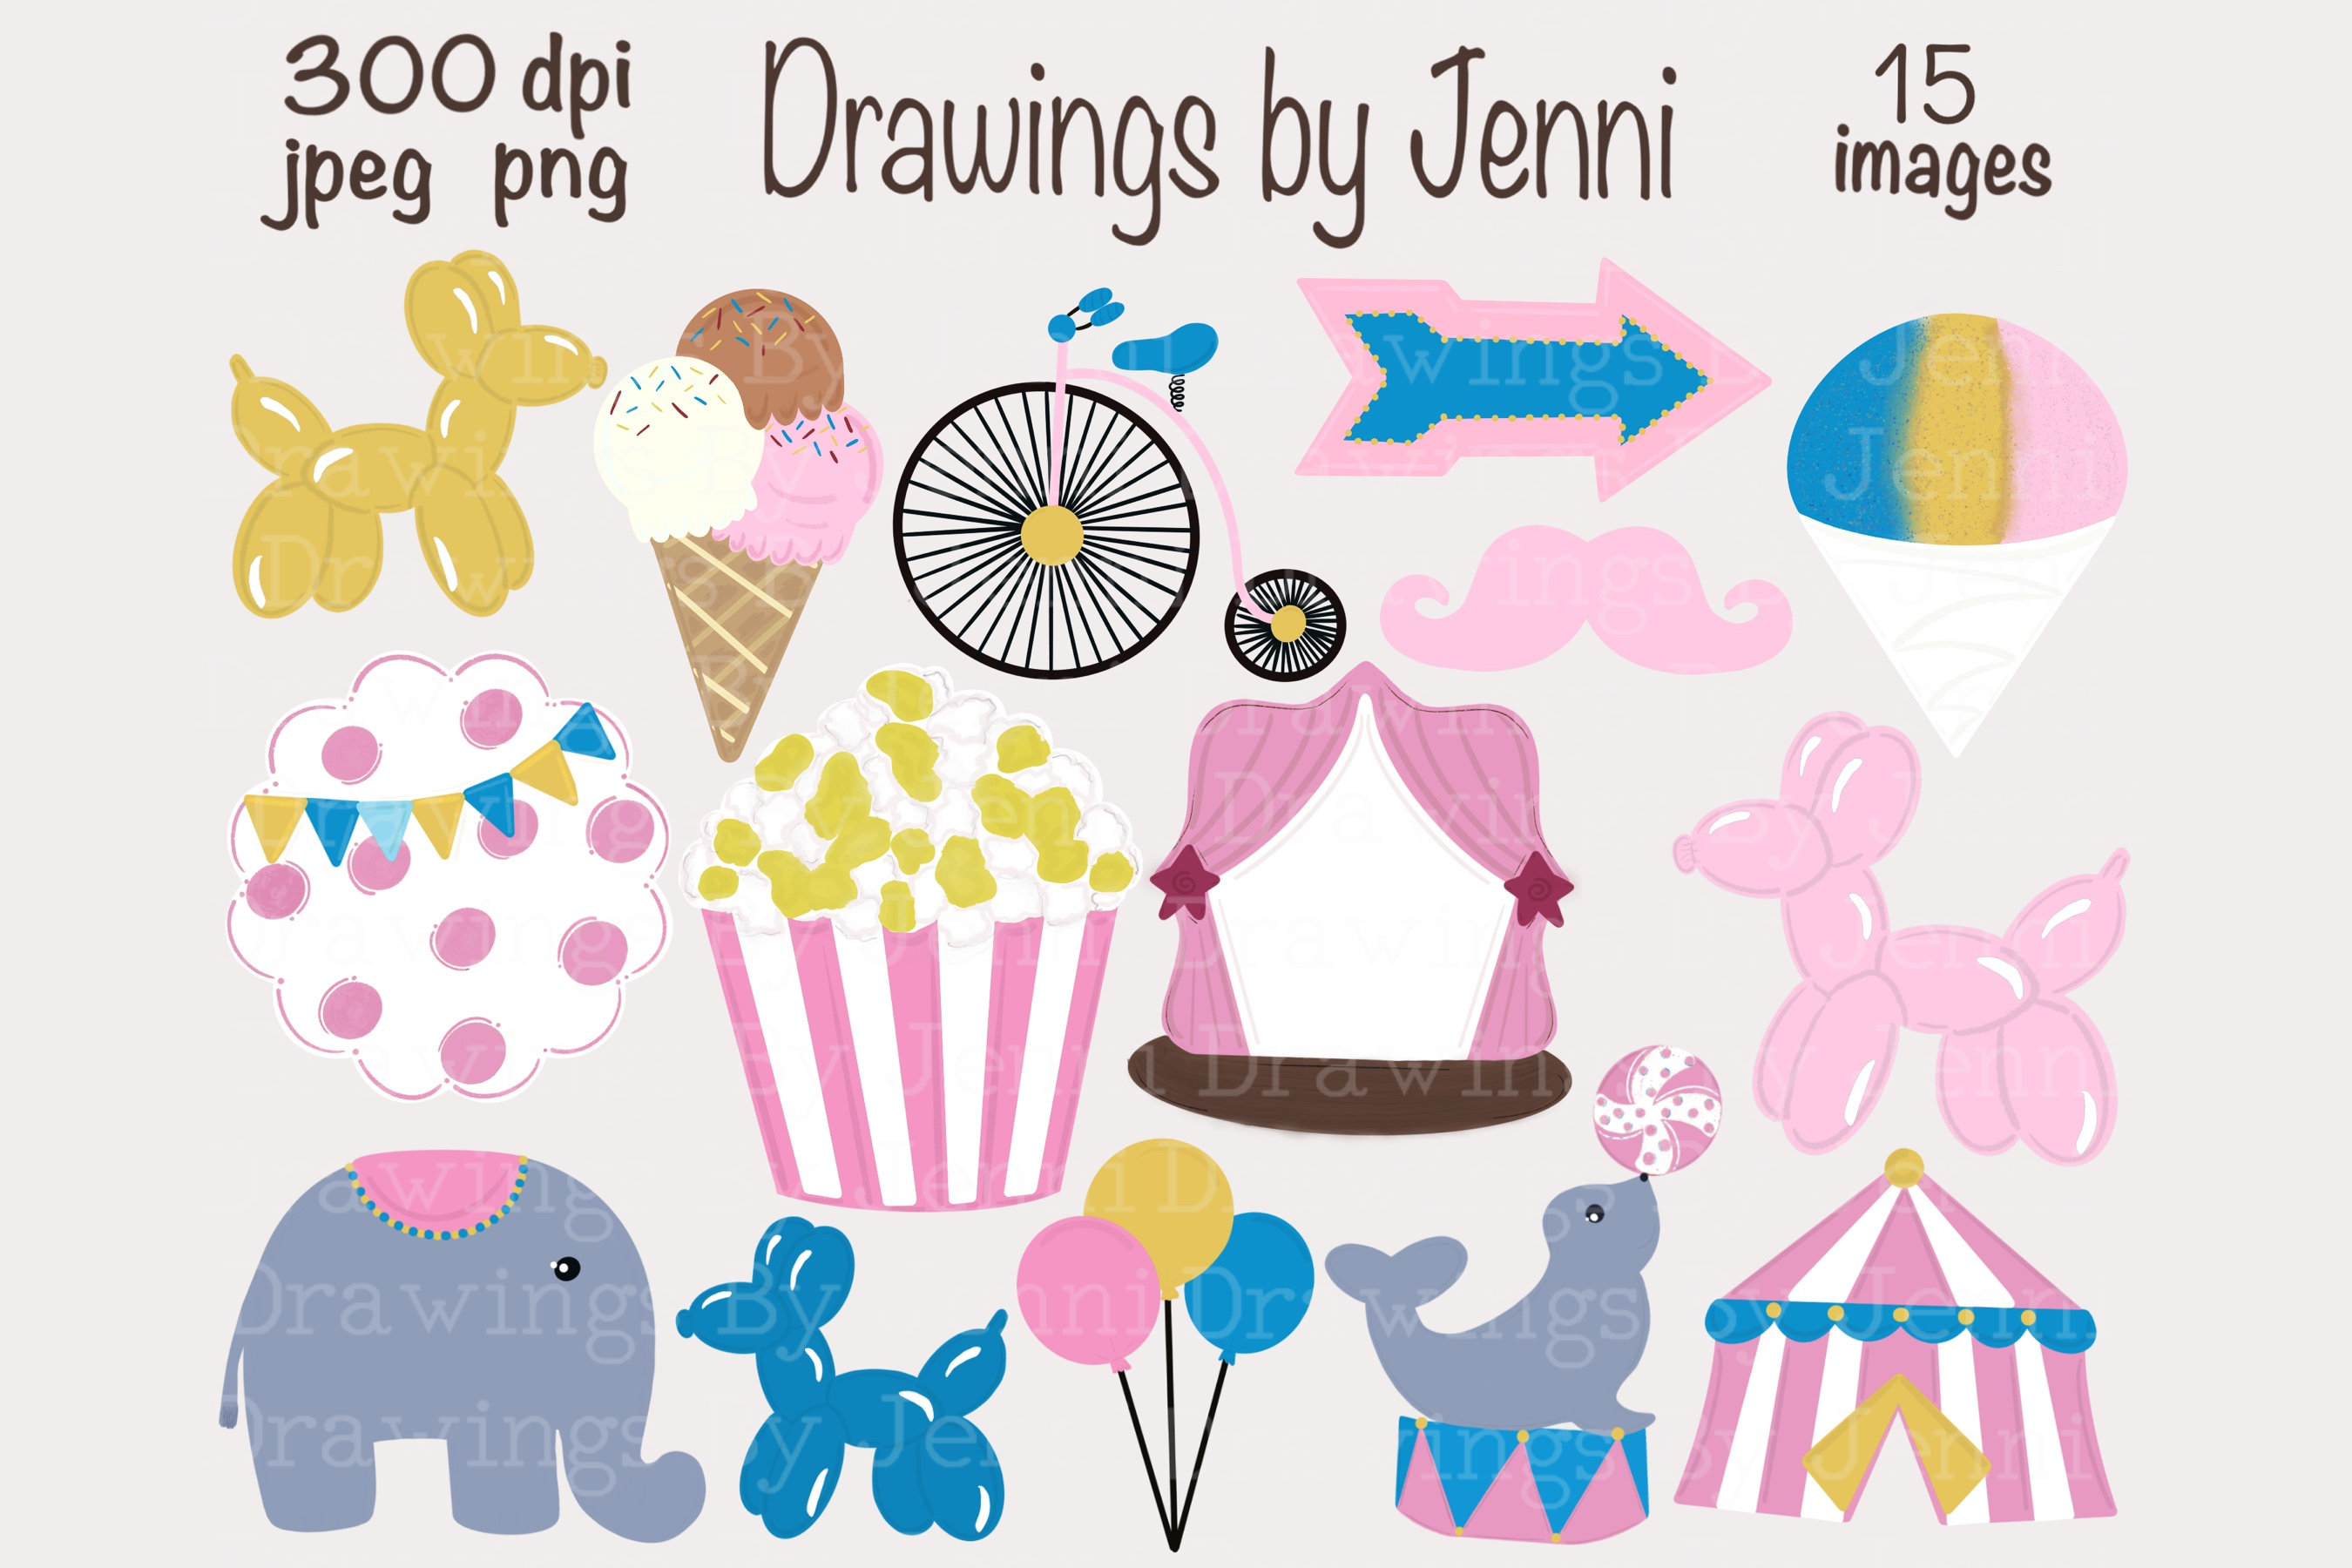 Download Free Pink Circus Clipart Carnival Clipart Graphic By Drawingsbyjenni for Cricut Explore, Silhouette and other cutting machines.